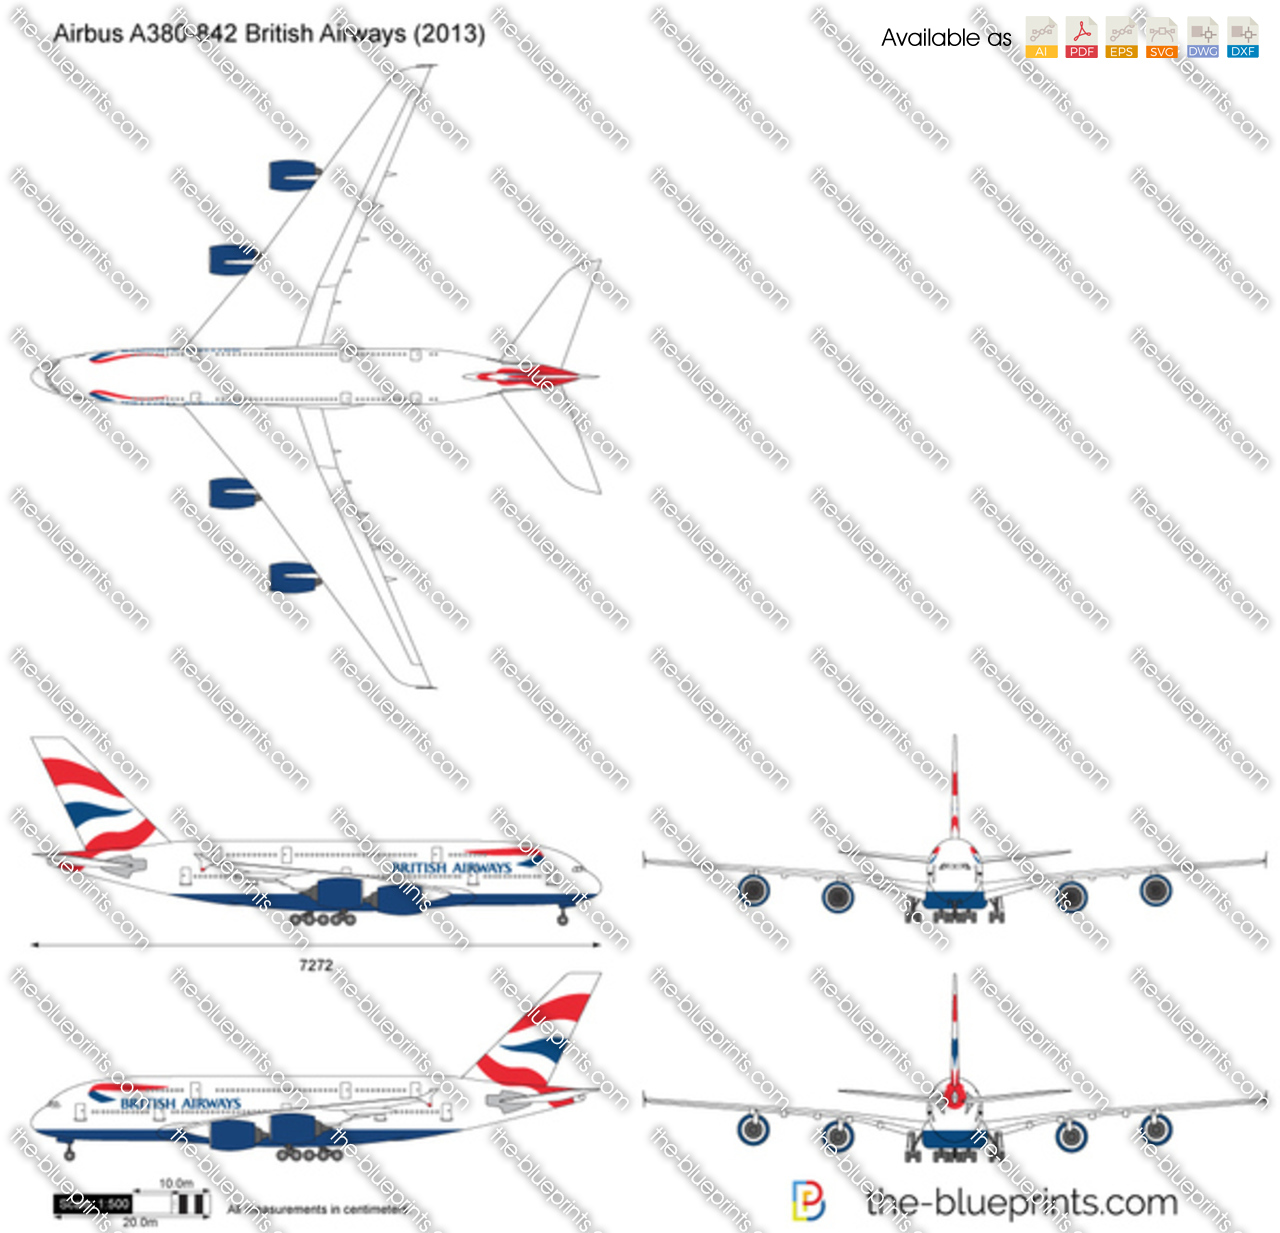 Airbus A380-842 British Airways 2015